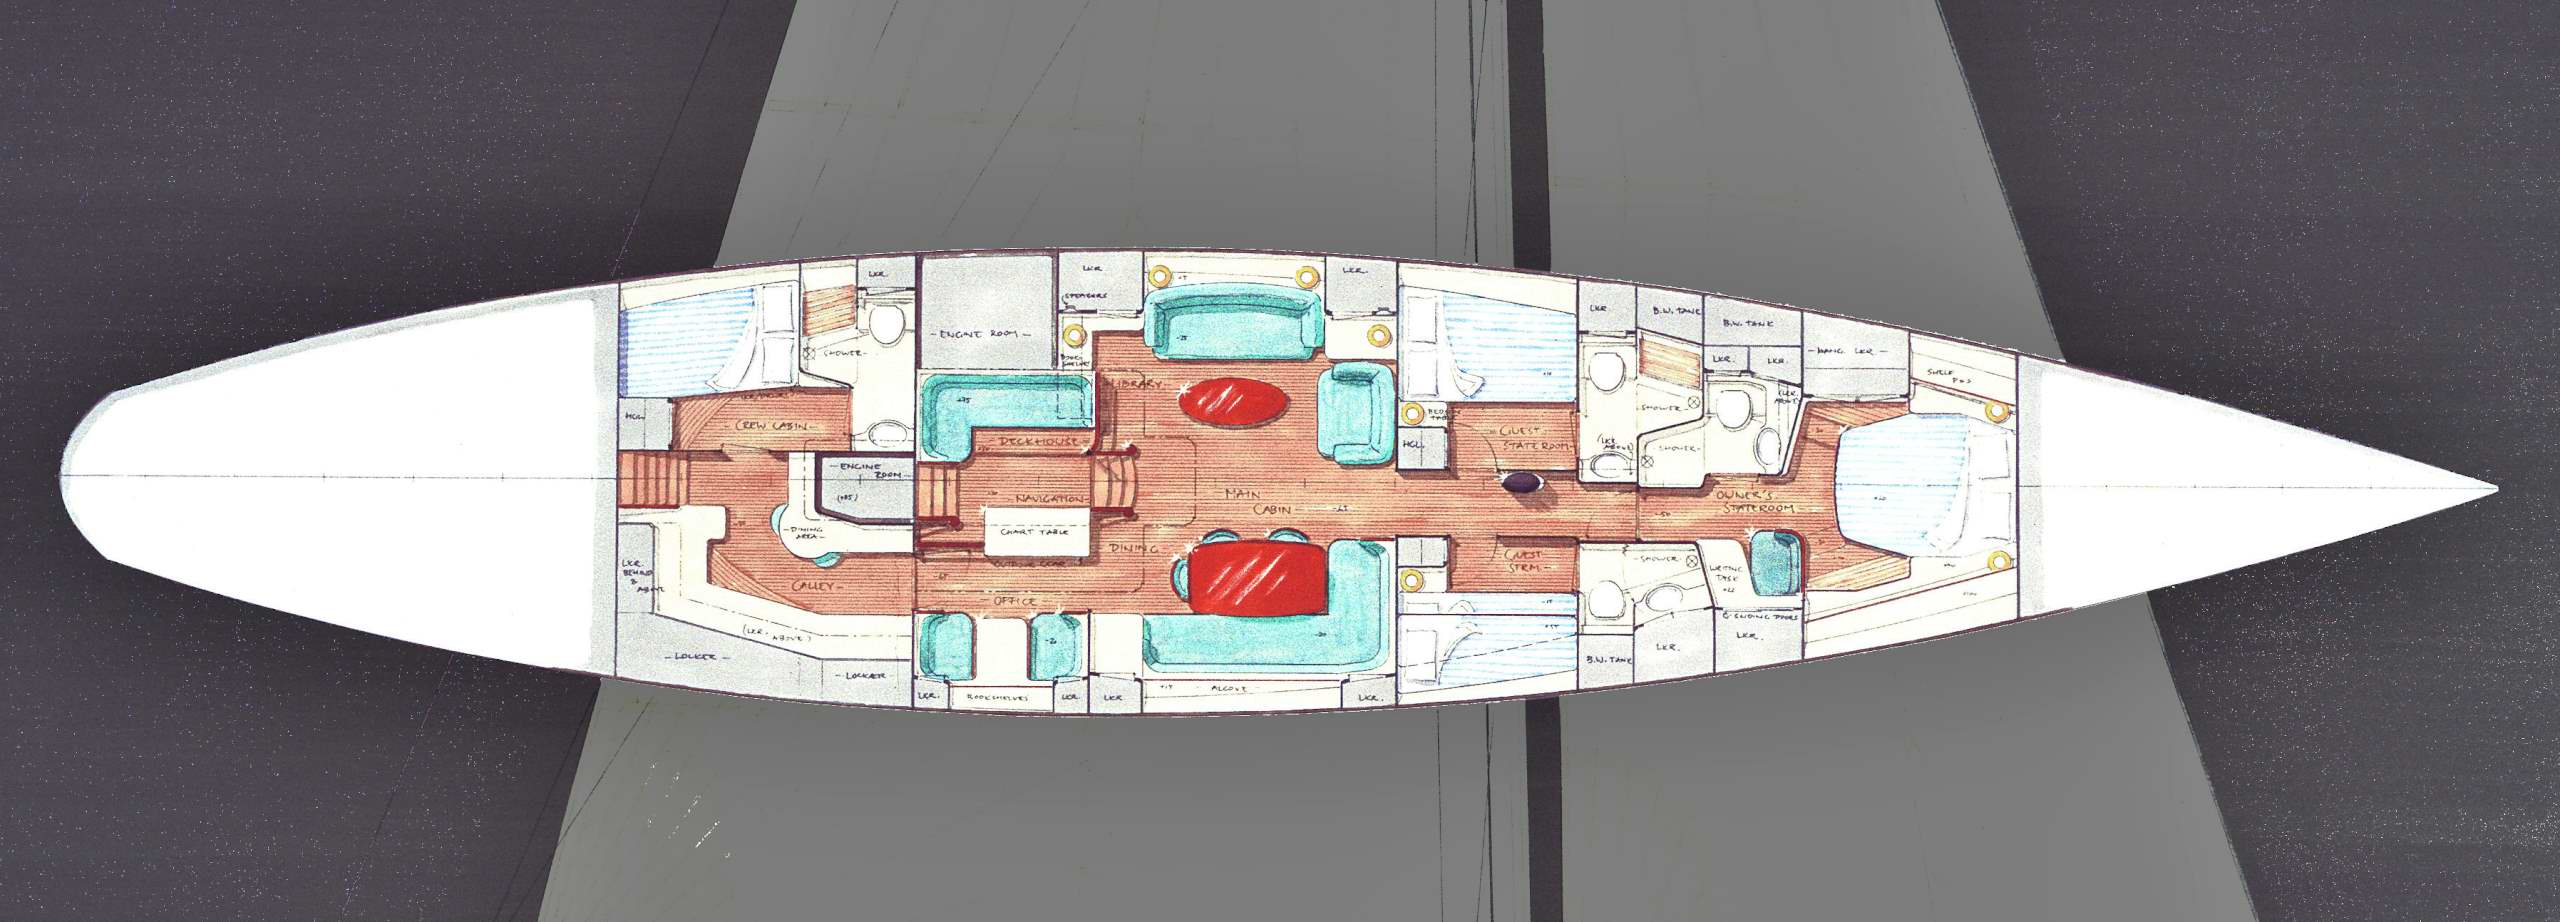 90' Classic, general arrangement (c) Heyman Yachts